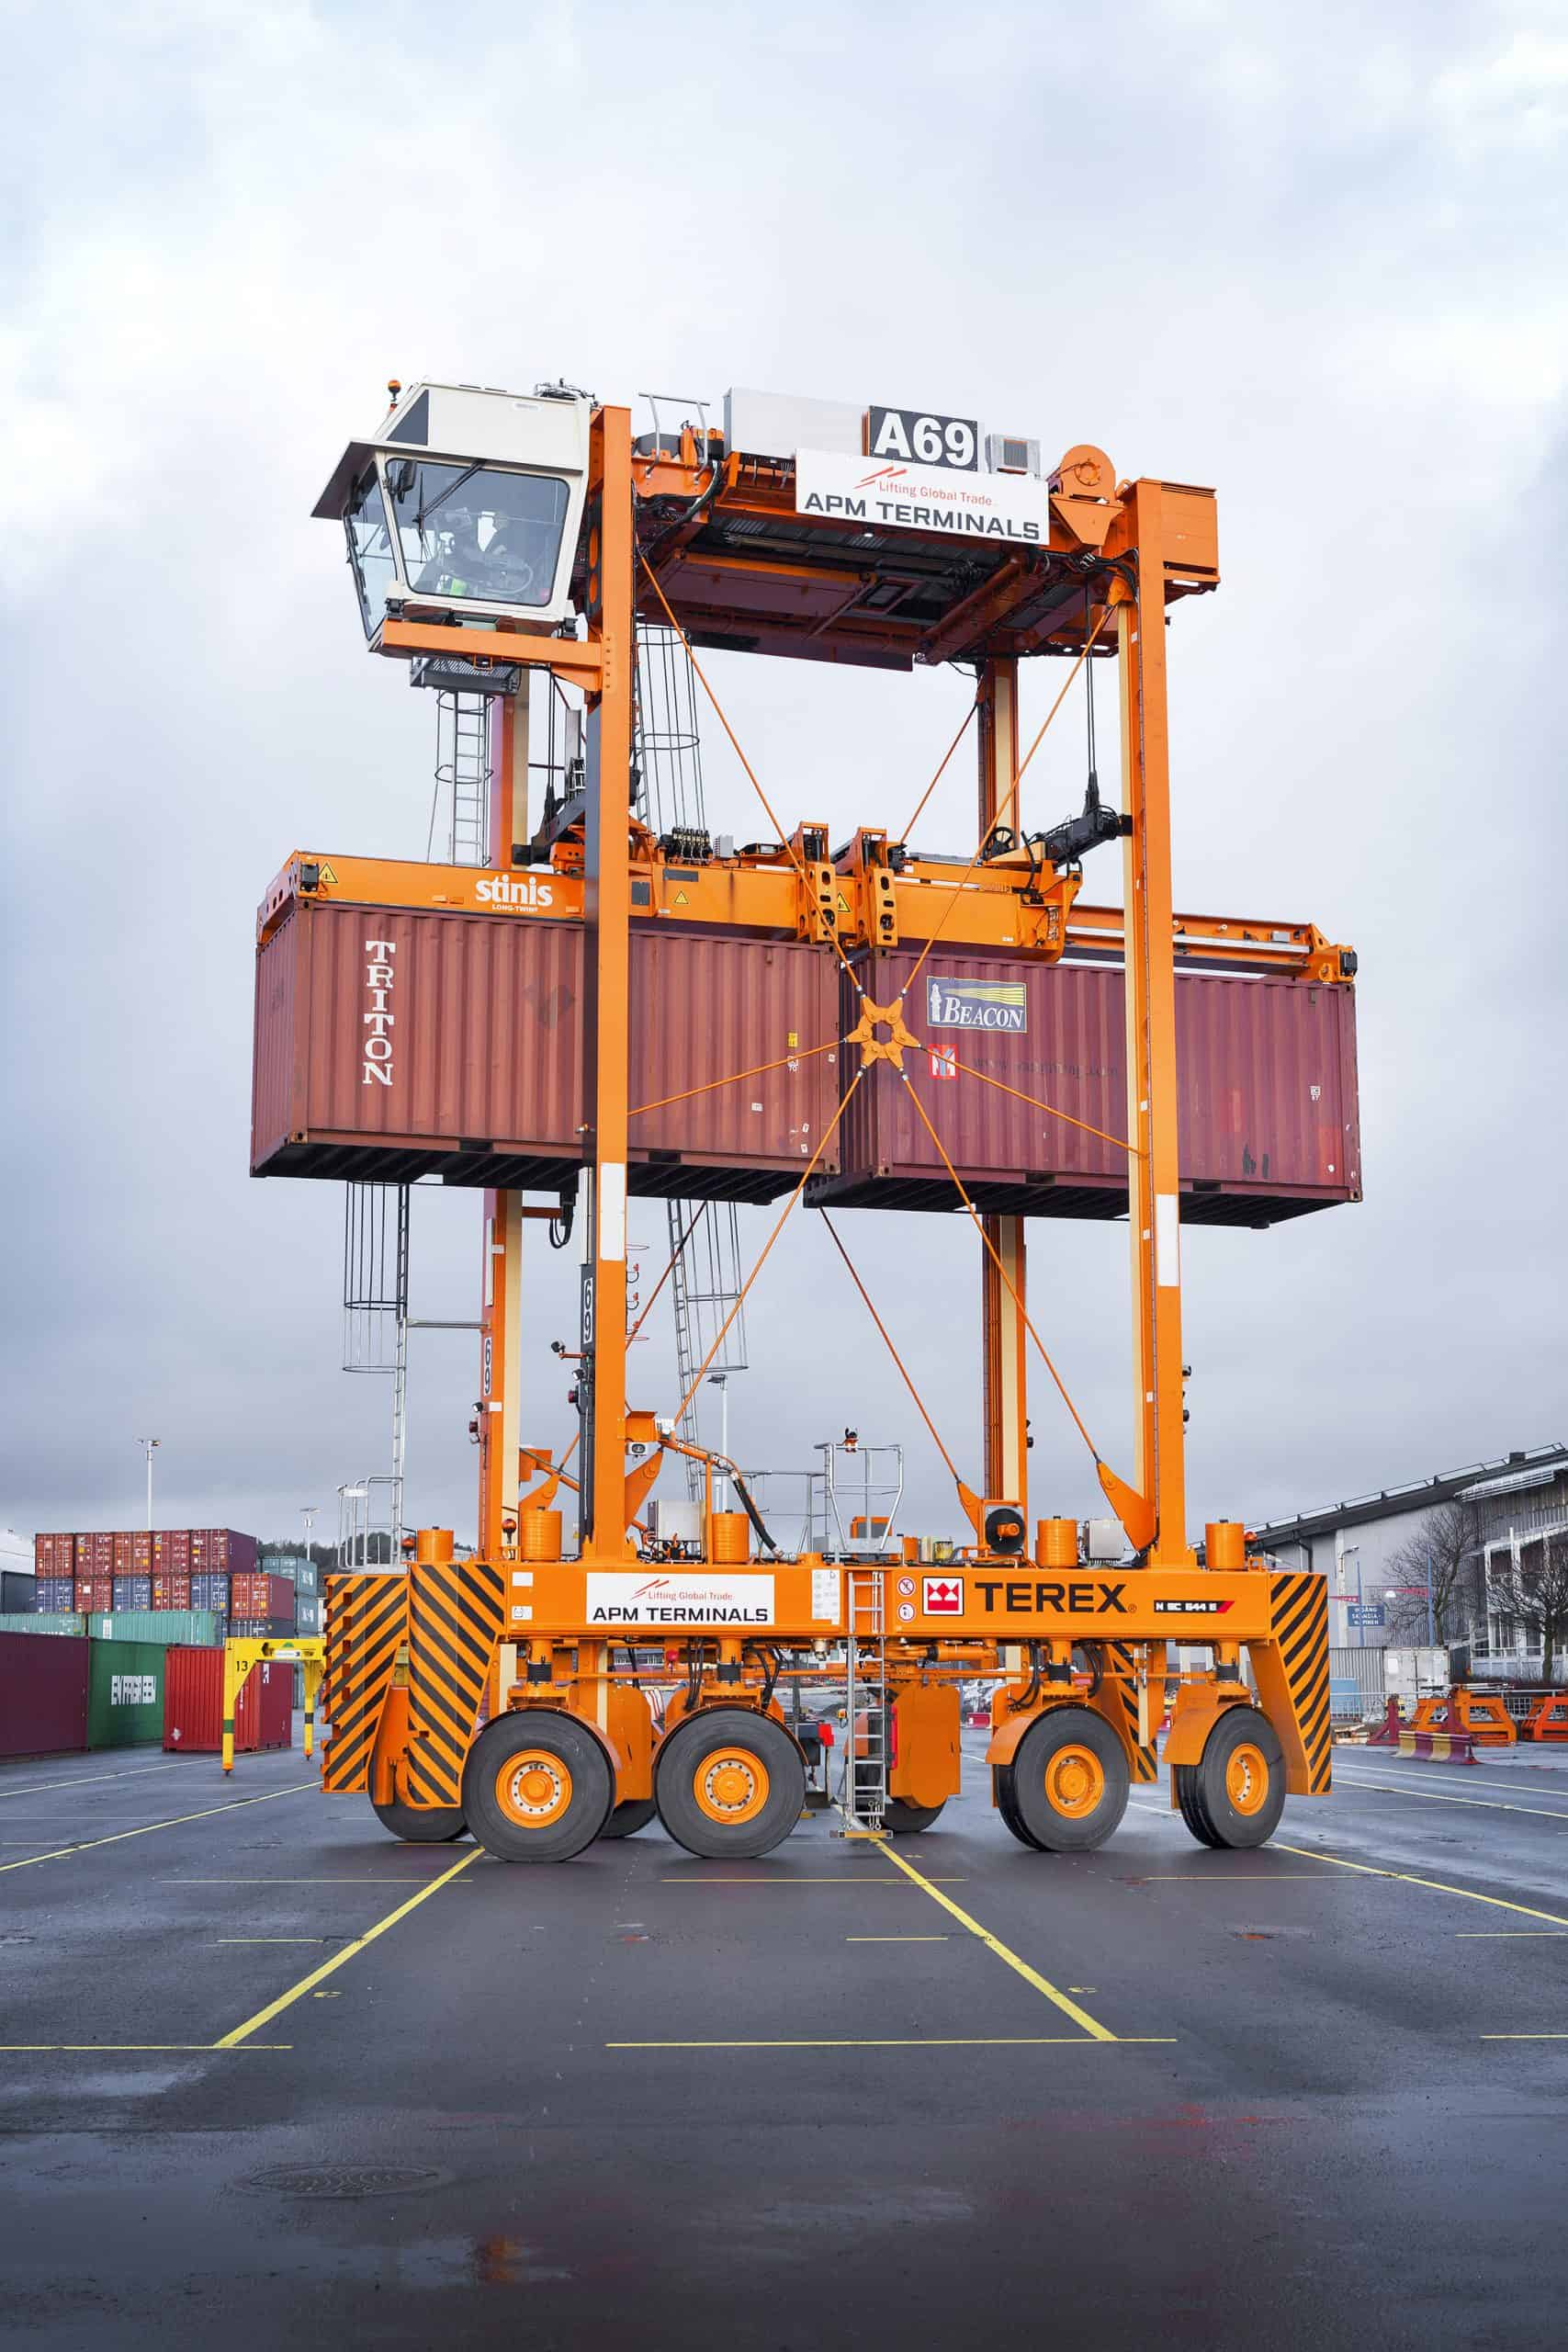 Twelve straddle carriers delivered to Gothenburg